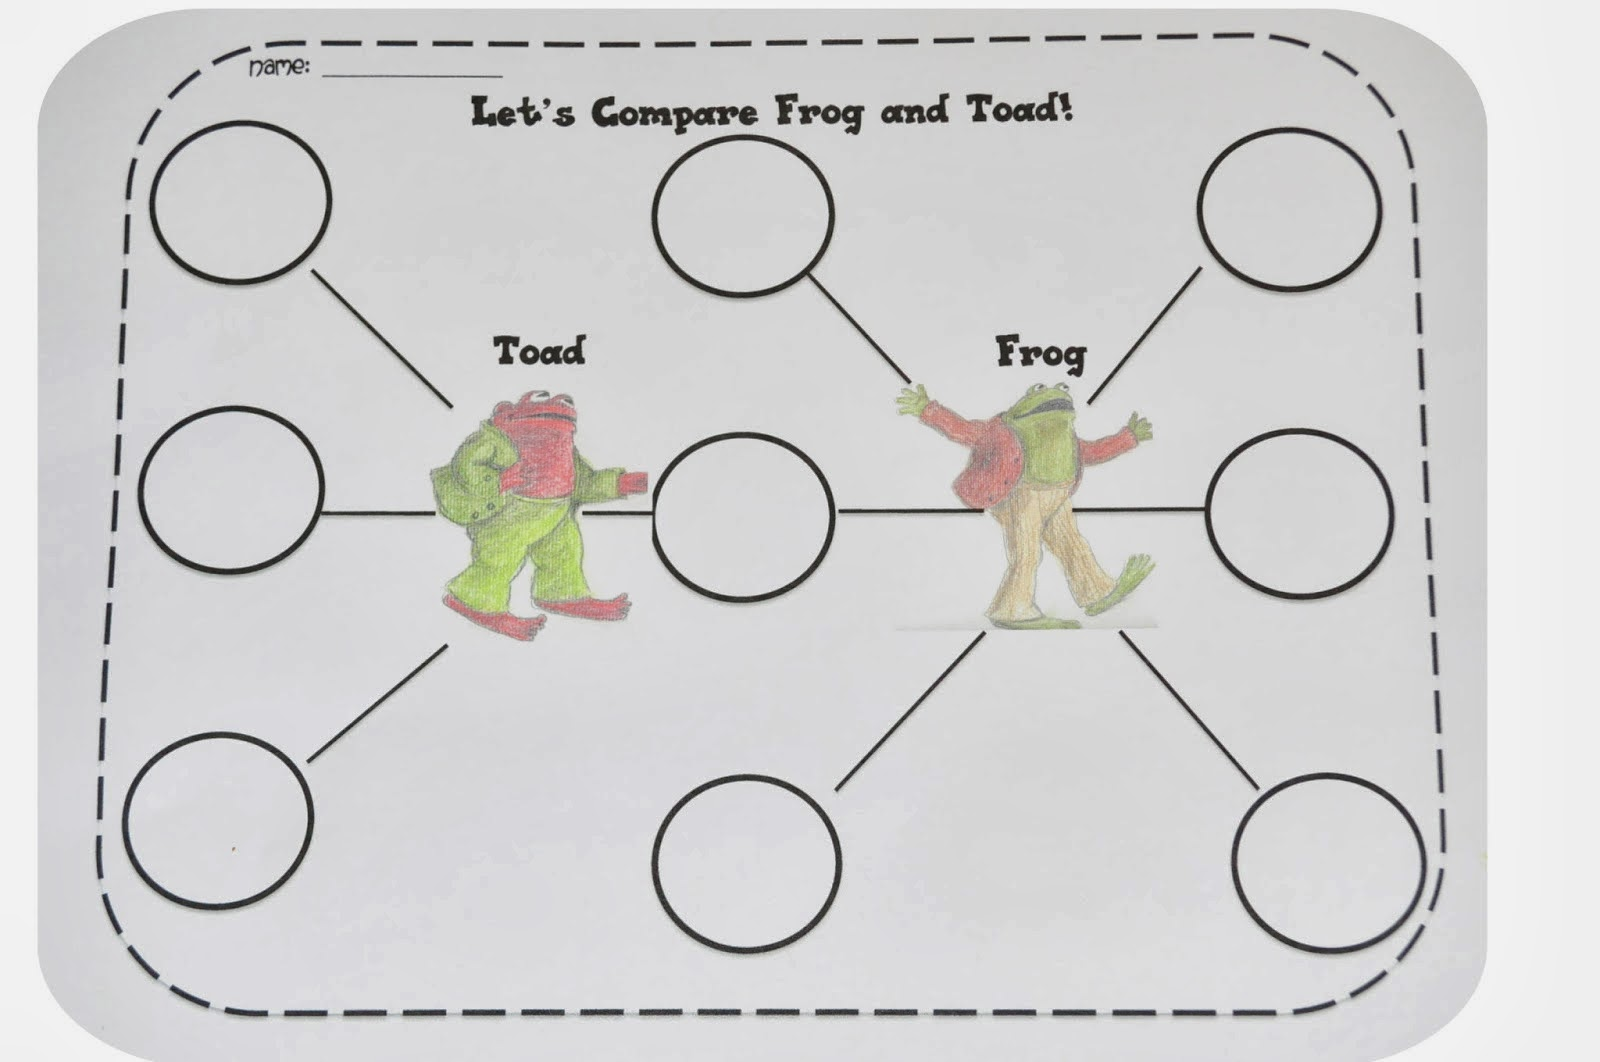 frog and toad compare and contrast essay Developing a thesis for compare-and-contrast essay - duration: 1:50 lorie shiveley 95,923 views 1:50.